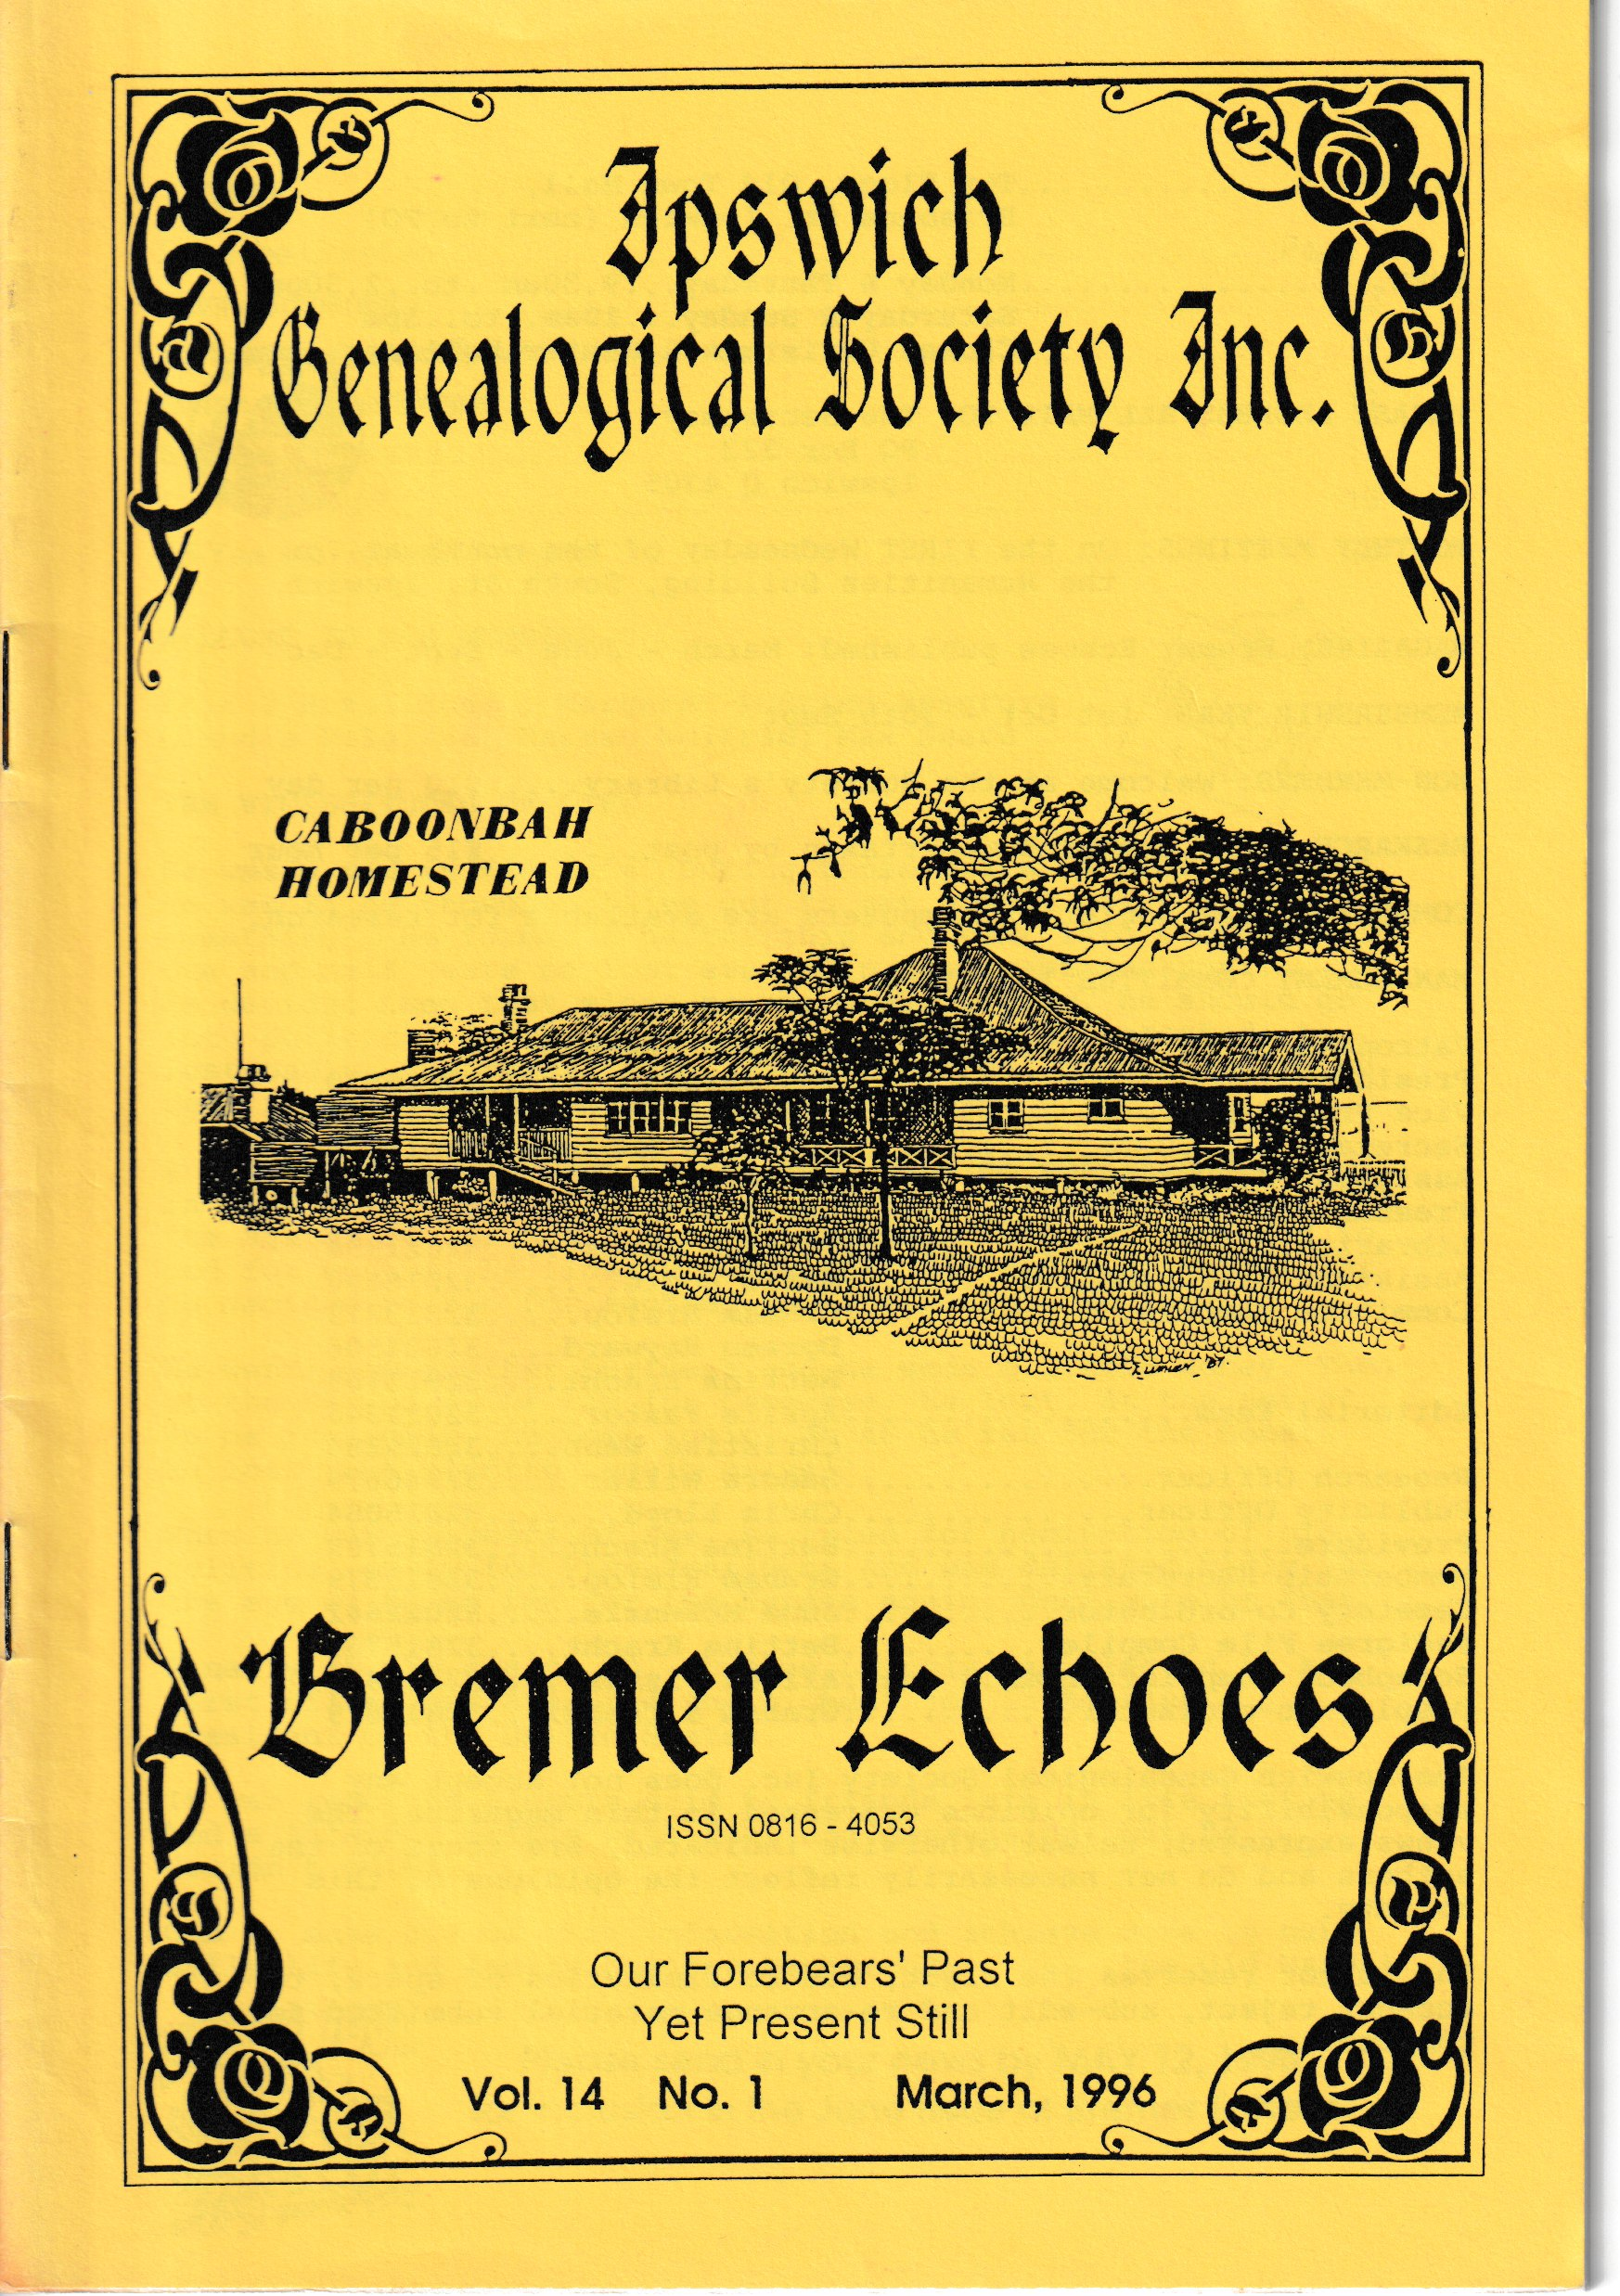 Bremer Echoes March 1996